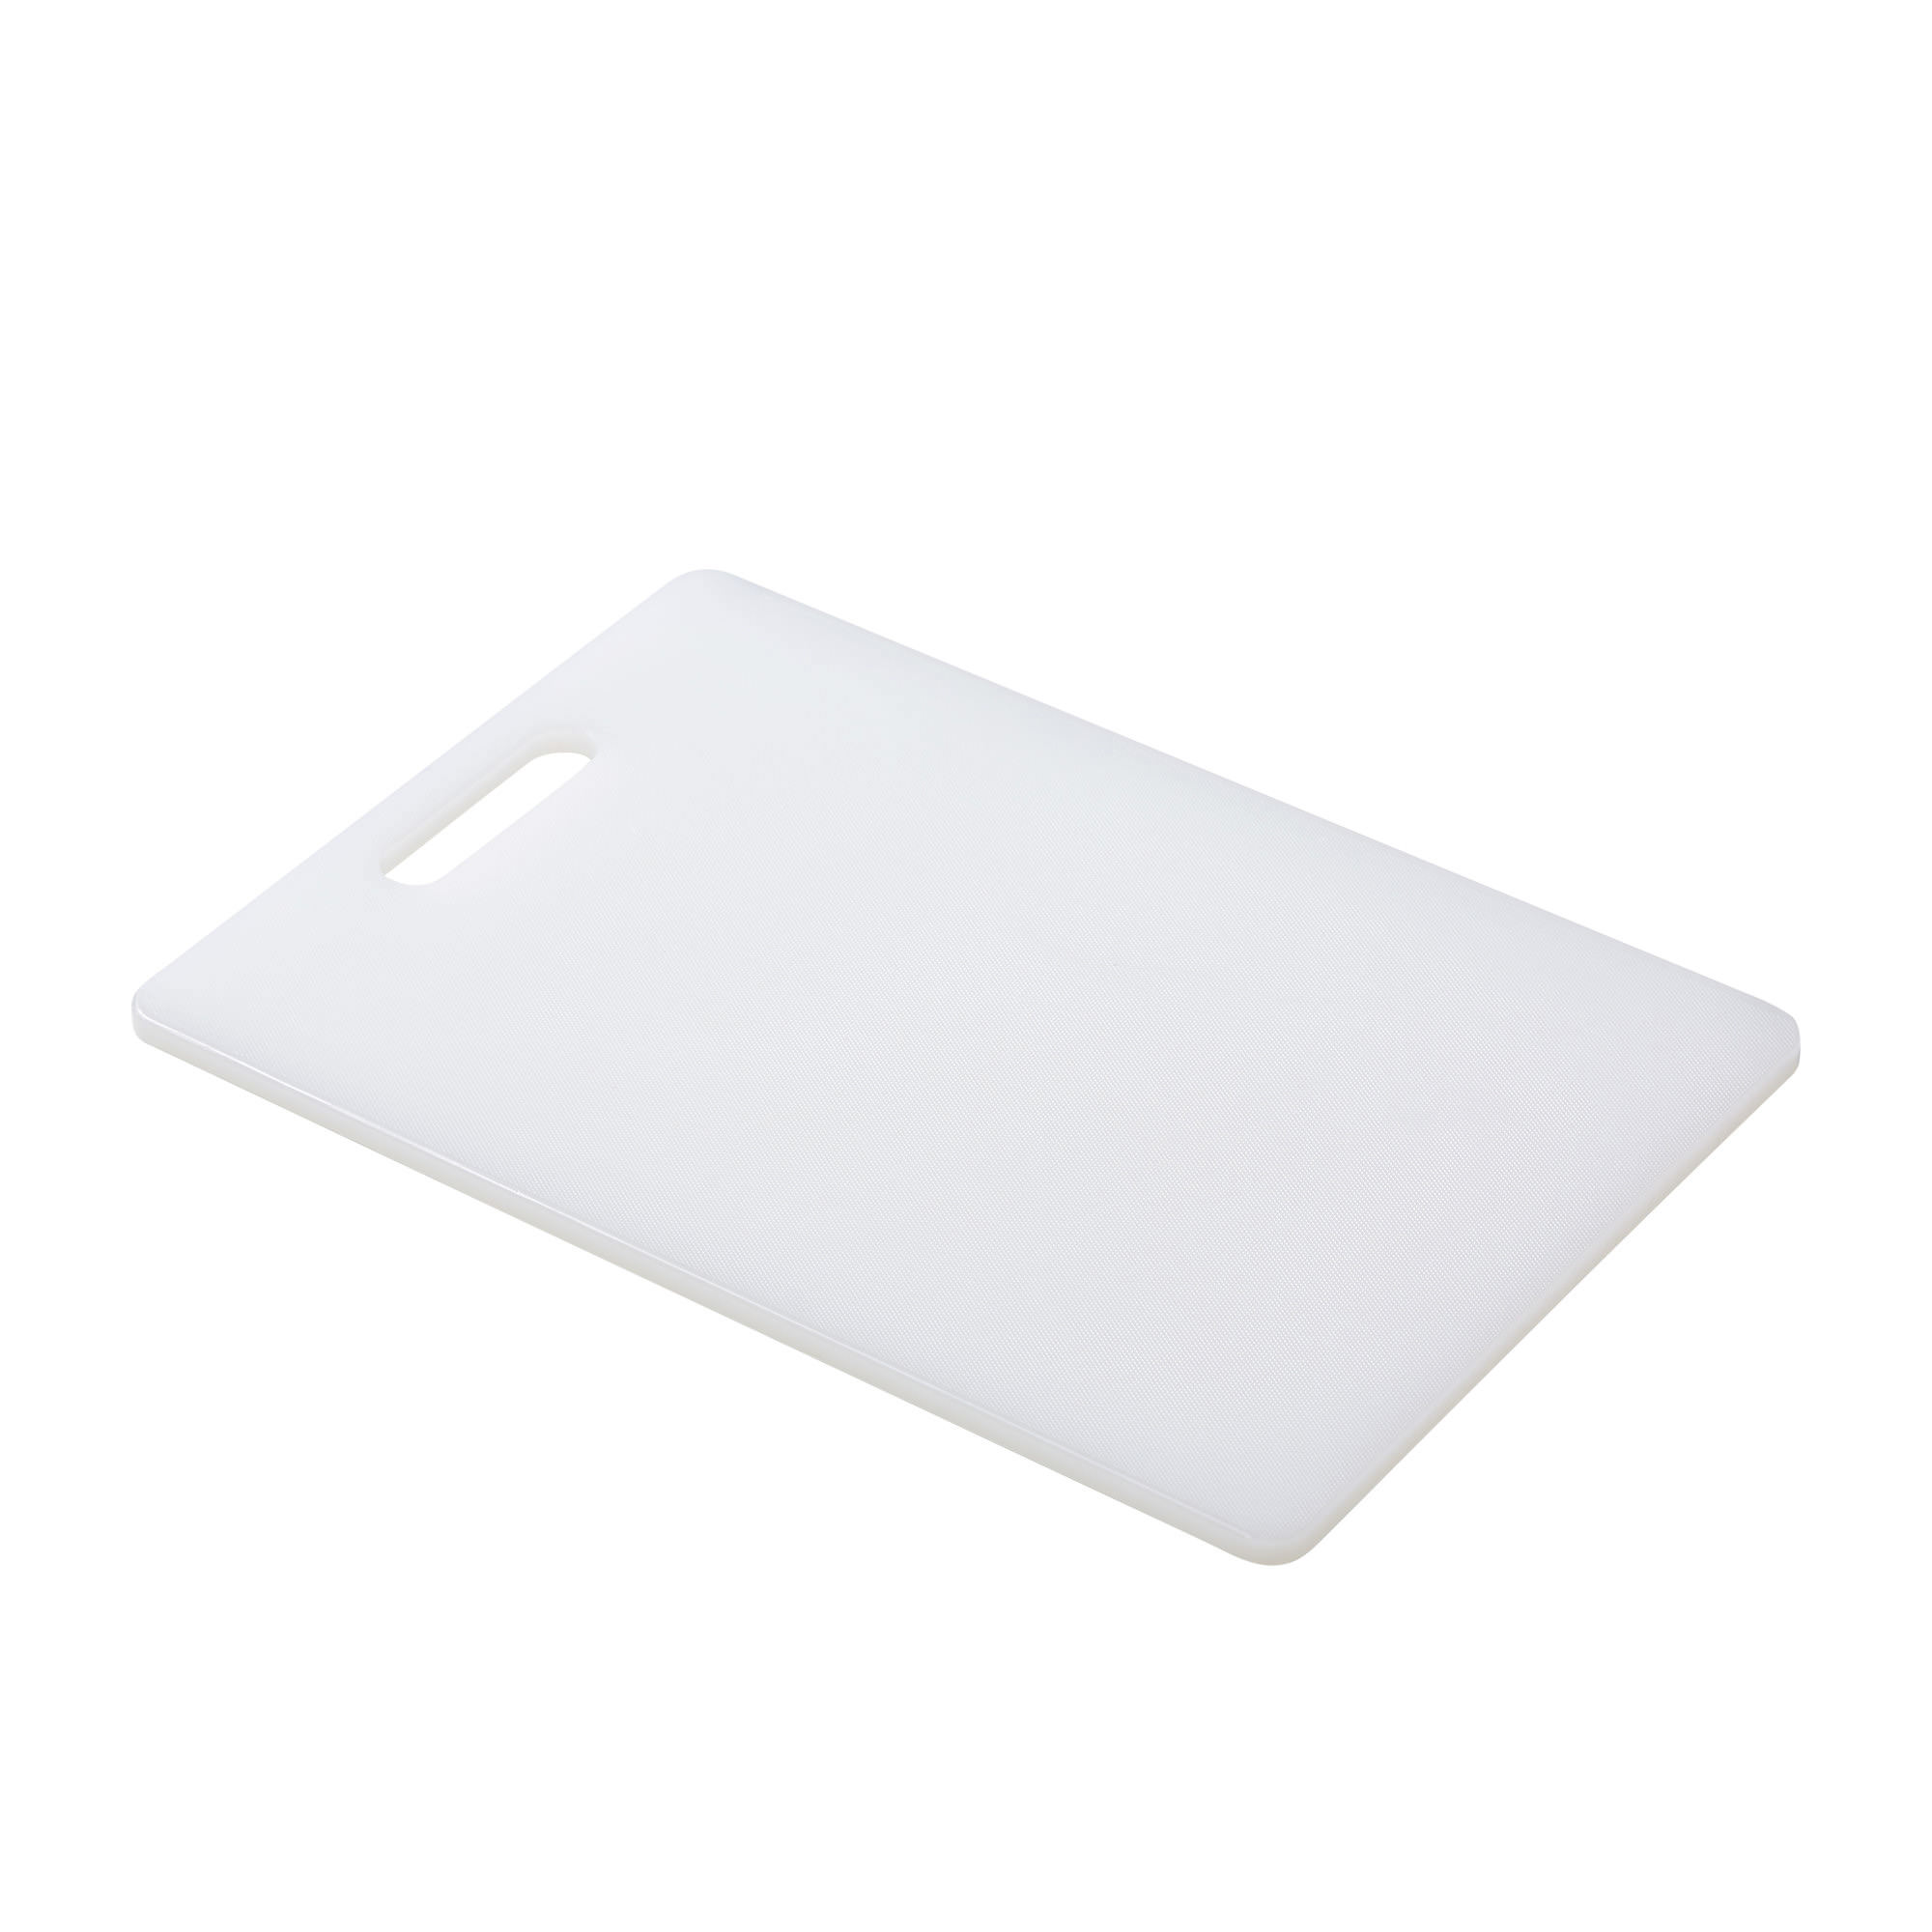 Kitchen Pro Classic Cutting Board 36x25x1.2cm White